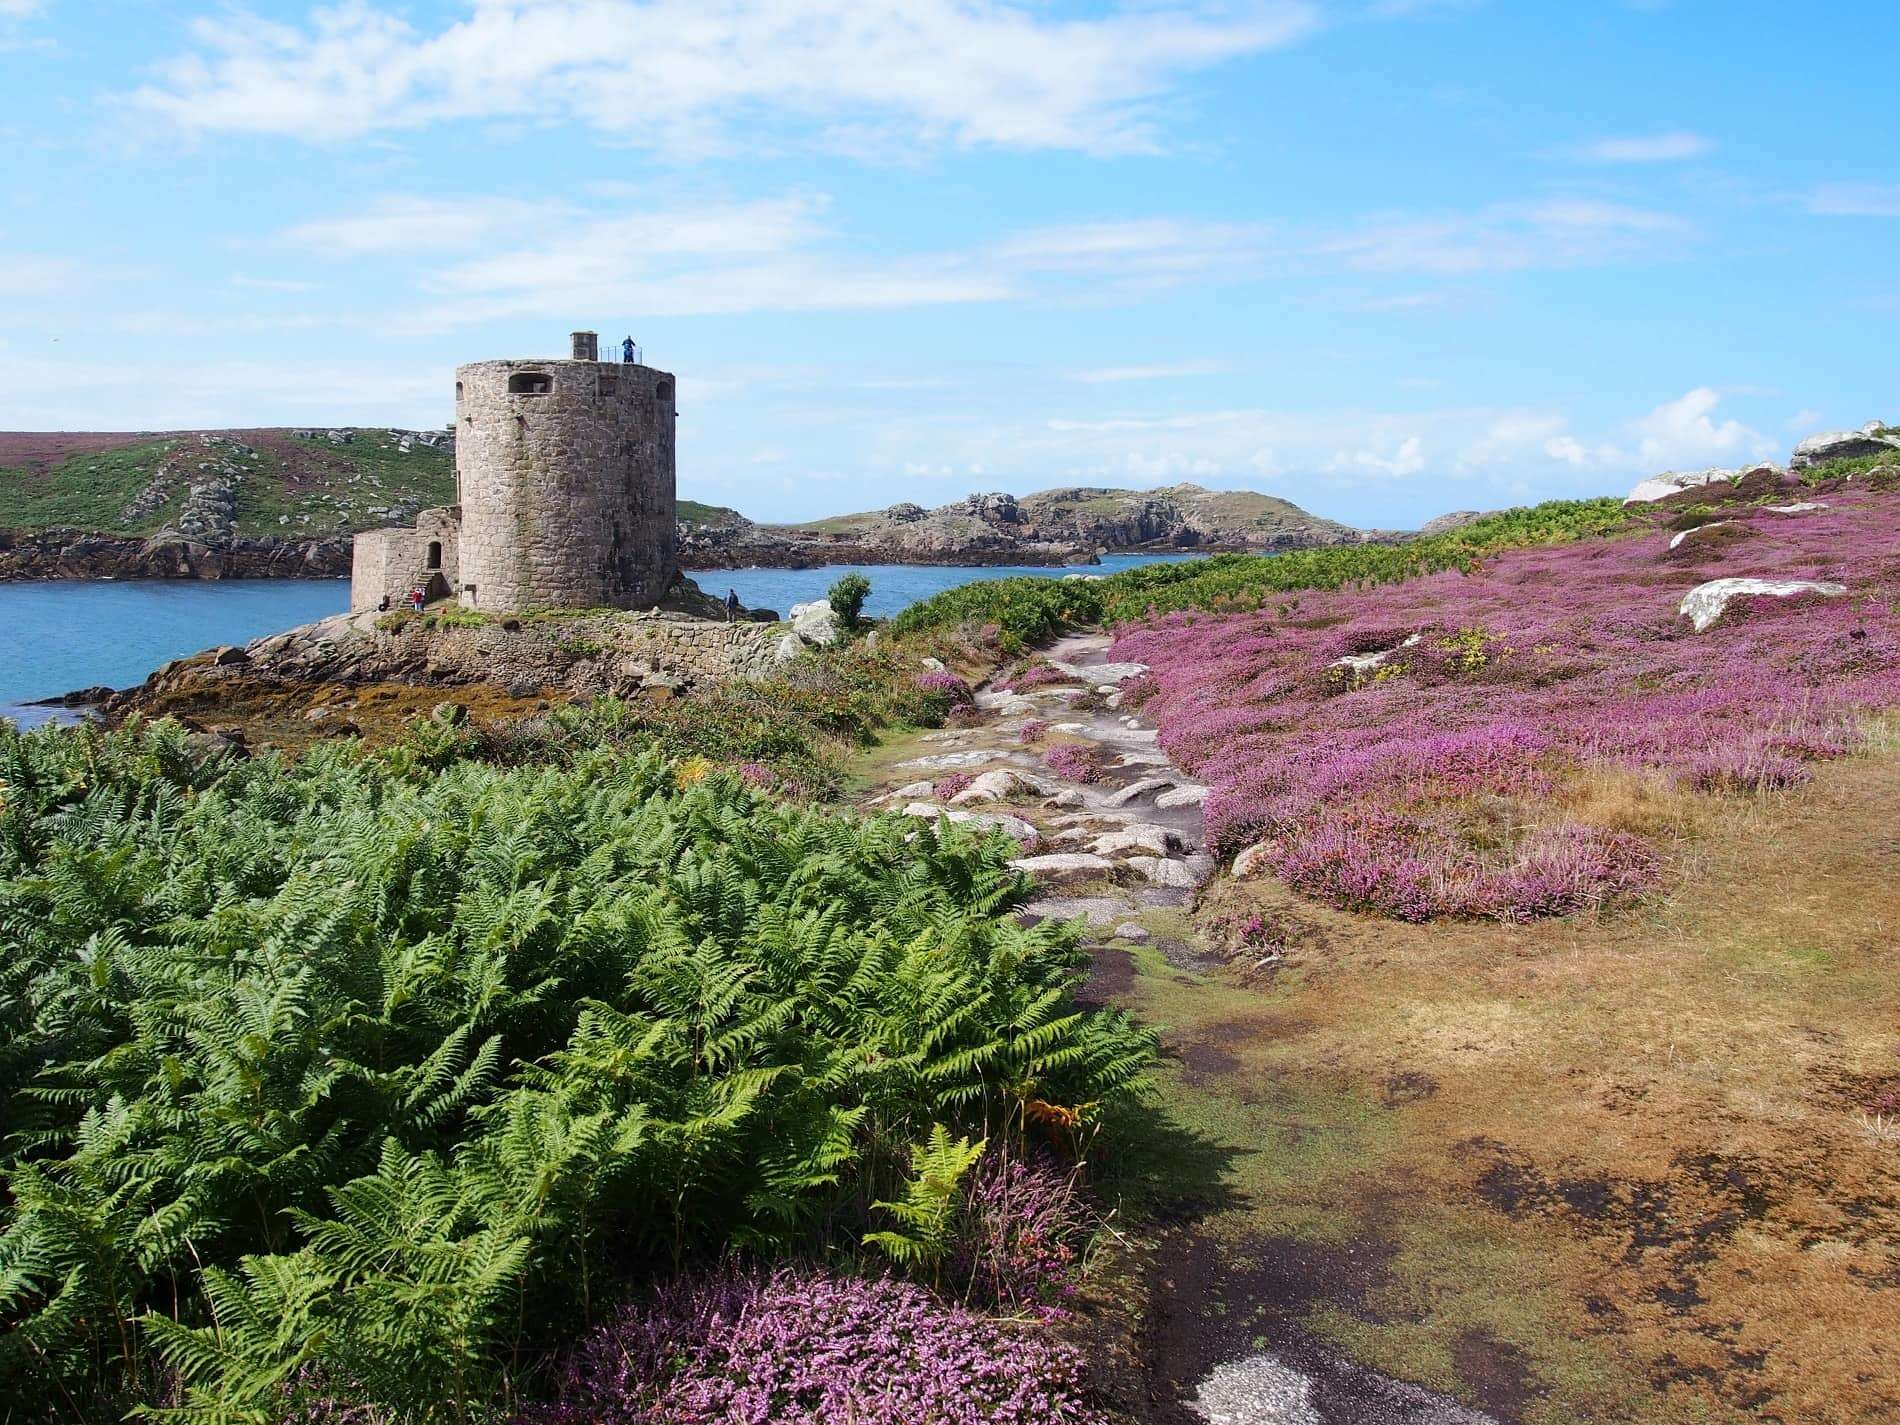 Cromwell's Castle, 17th-century fortification on the island of Tresco